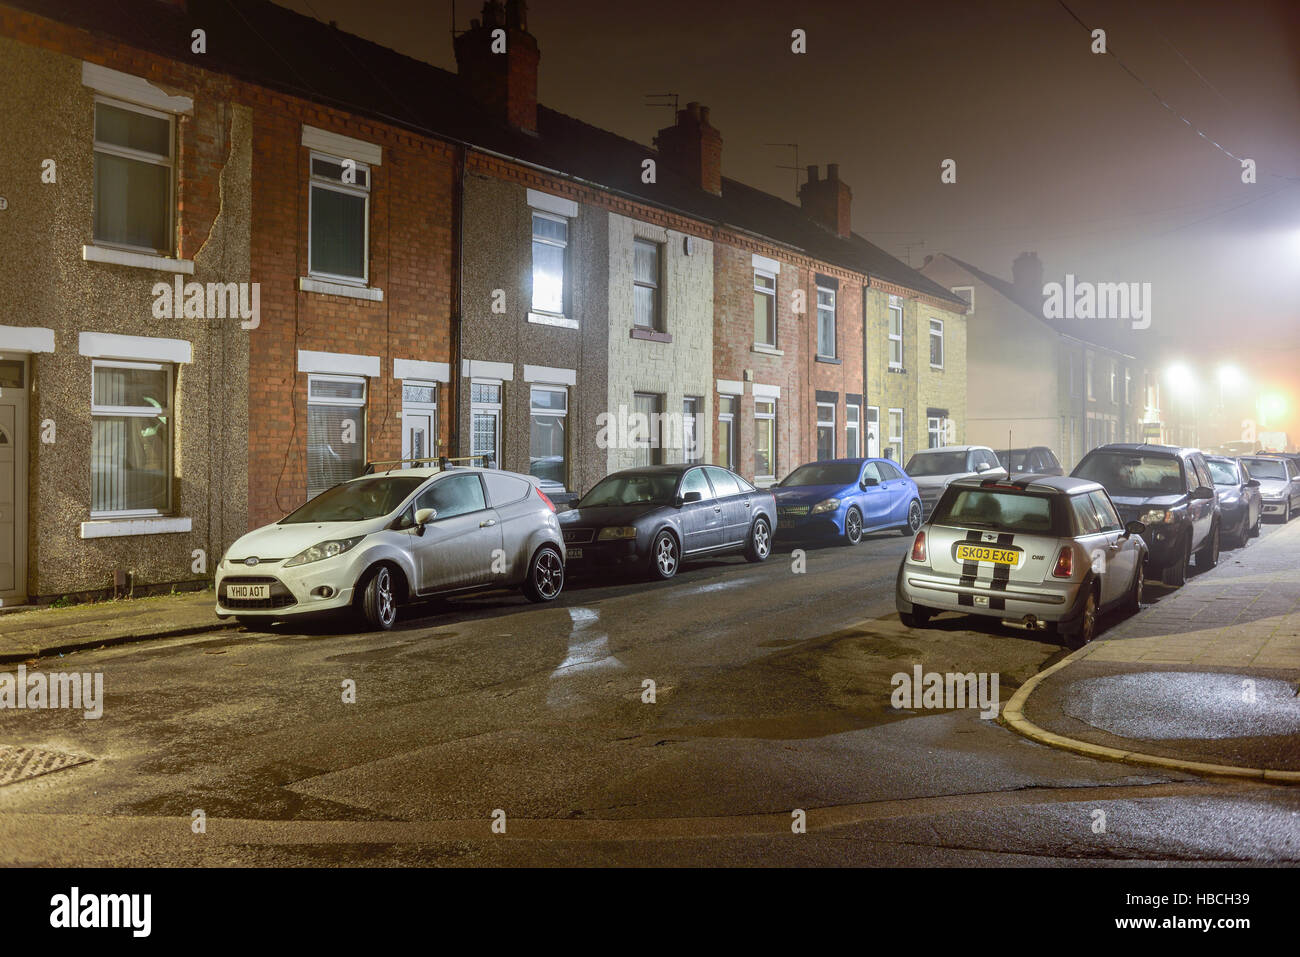 Hucknall, Nottinghamshire, UK. 06th Dec, 2016. Parts of North Nottinghamshire wake-up to misty damp start to the - Stock Image